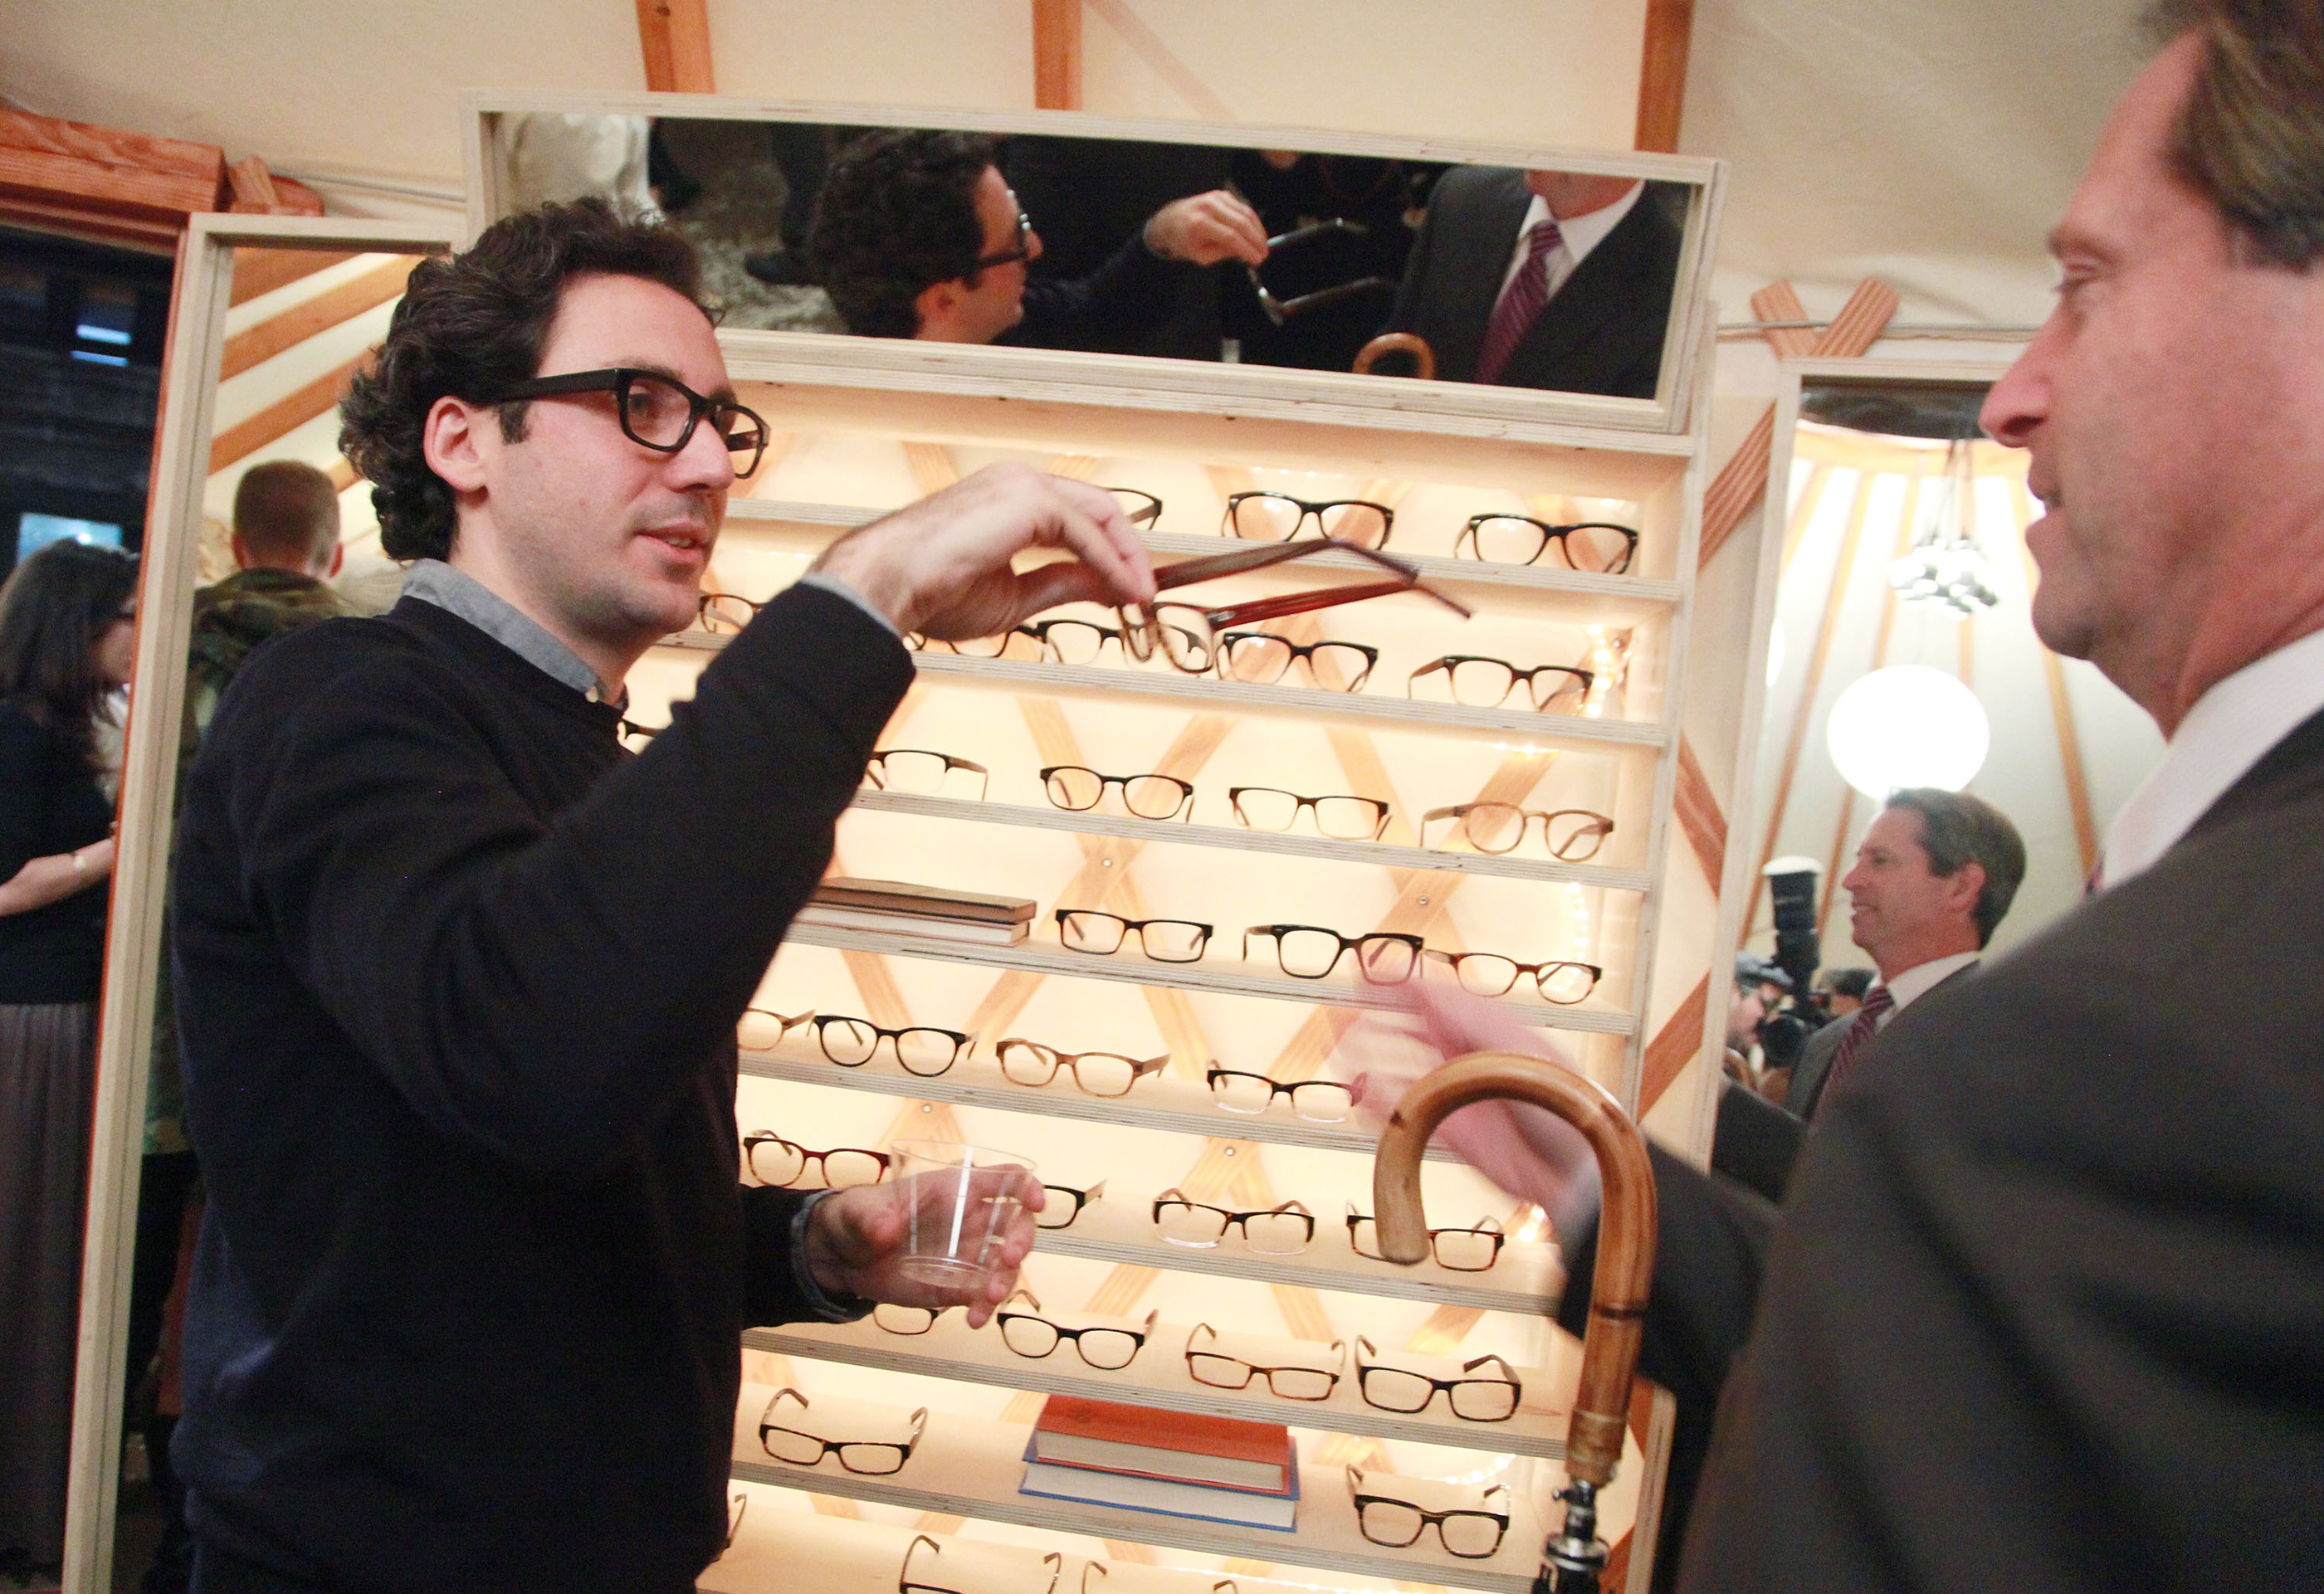 Neil Blumenthal shows Warby Parker optical frames at the Warby Parker's holiday spectacle bazaar - leftover launch on November 29, 2011 in New York City.